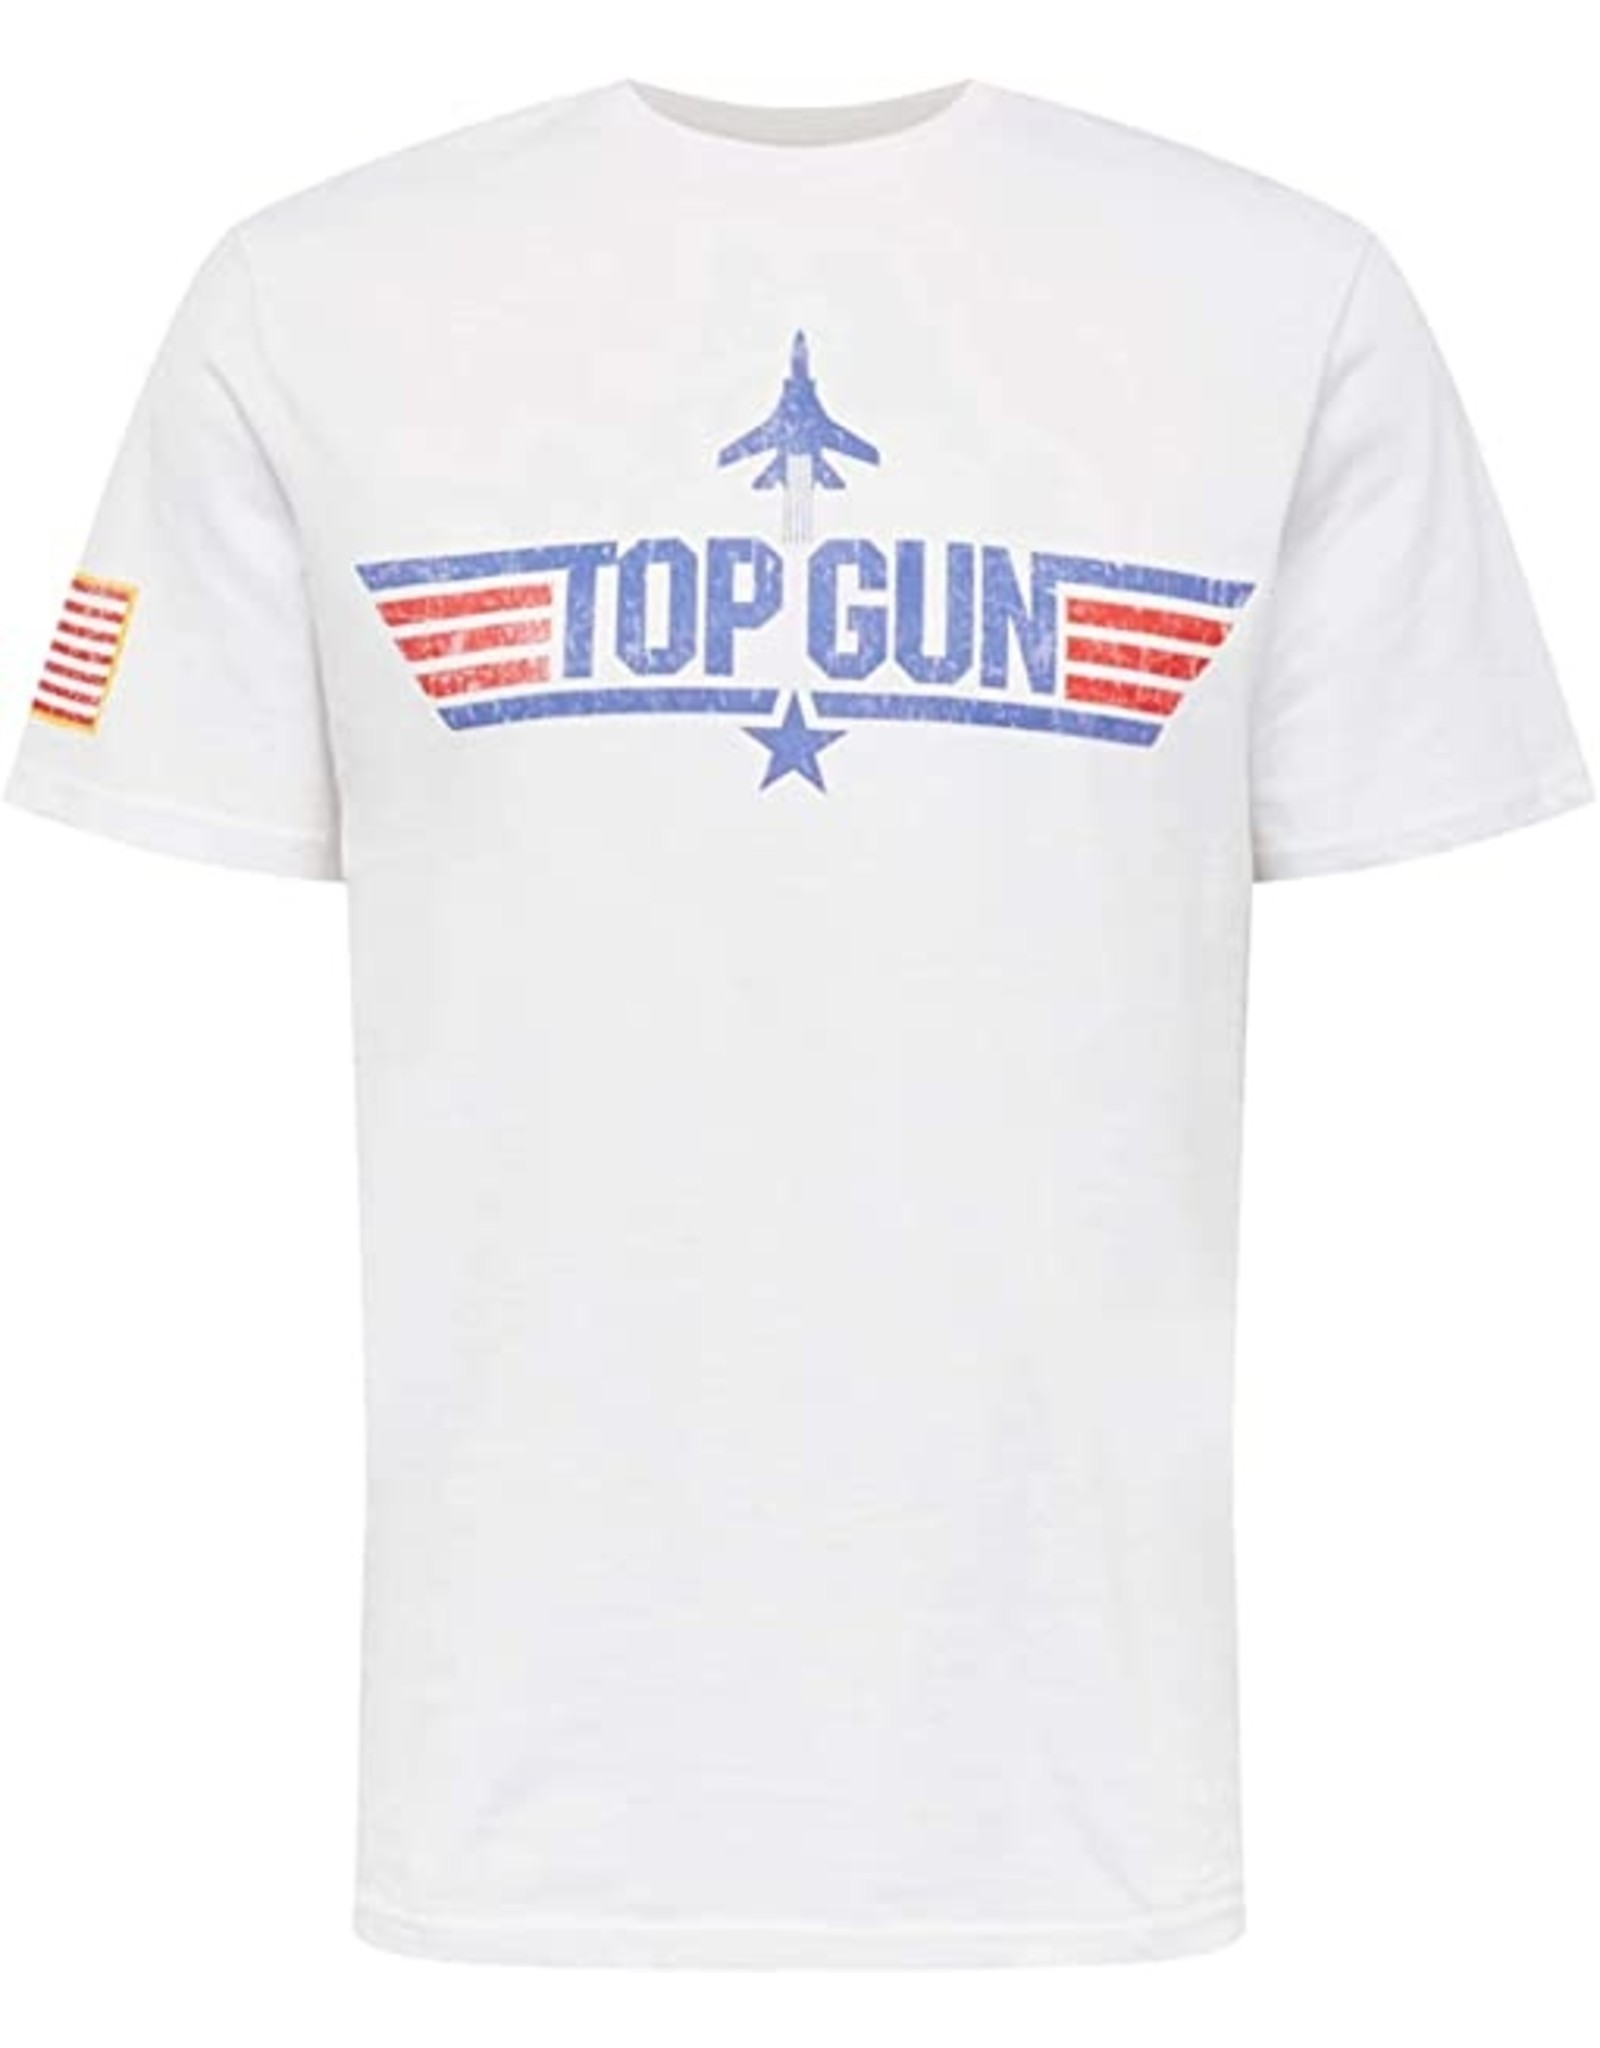 ONLY & SONS TOP GUN T-SHIRT